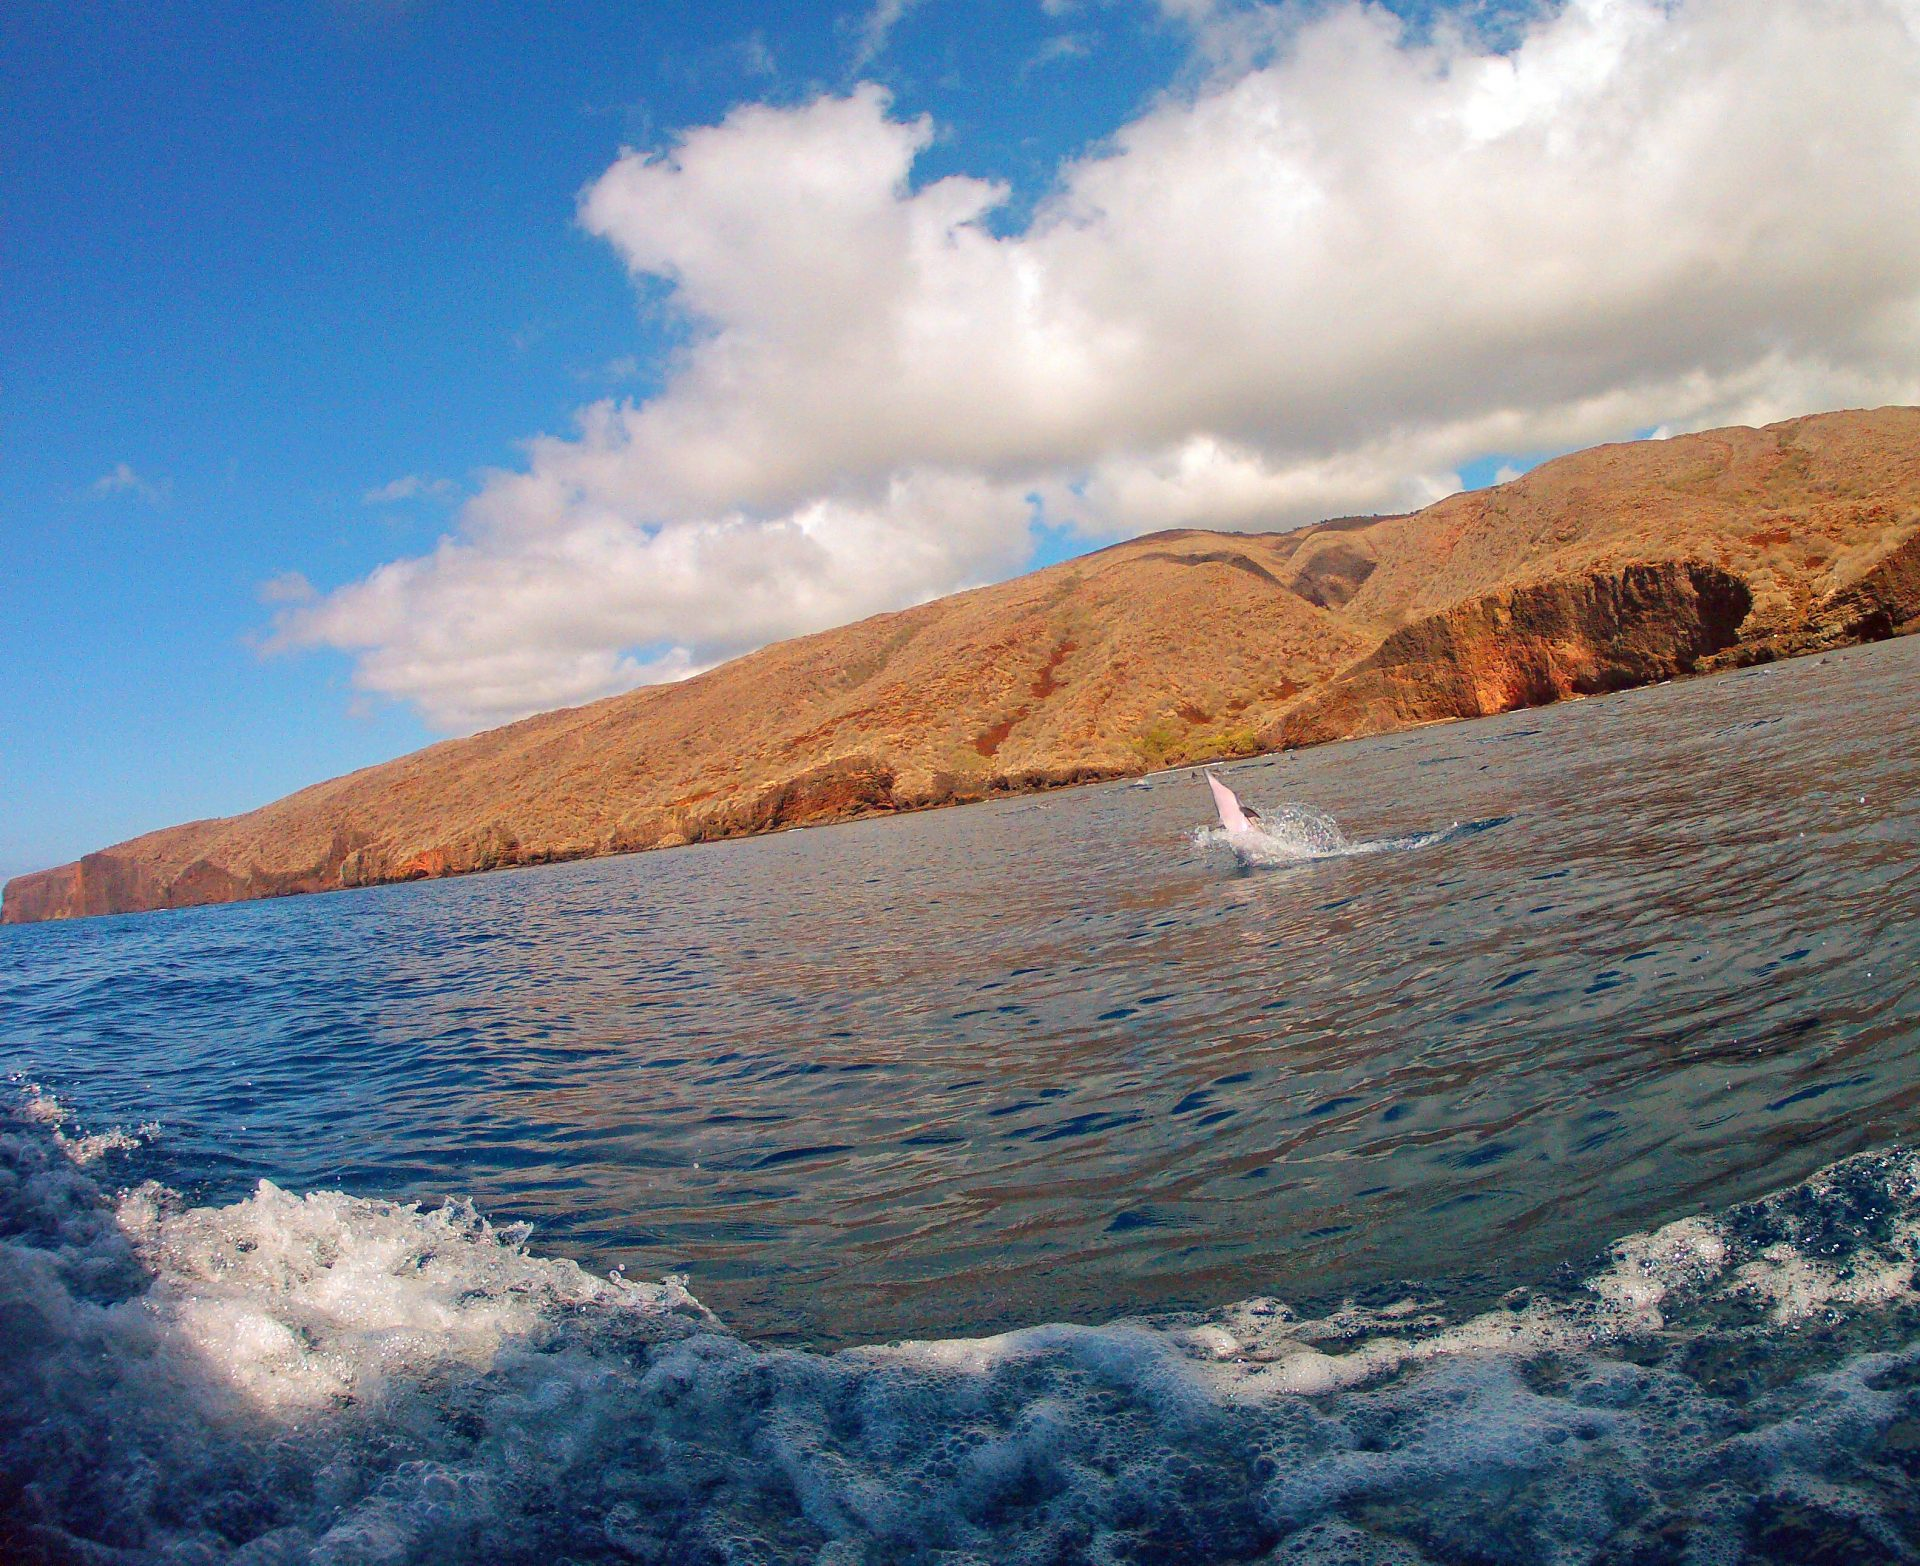 A spinner dolphin around the cliffs of Lanai.